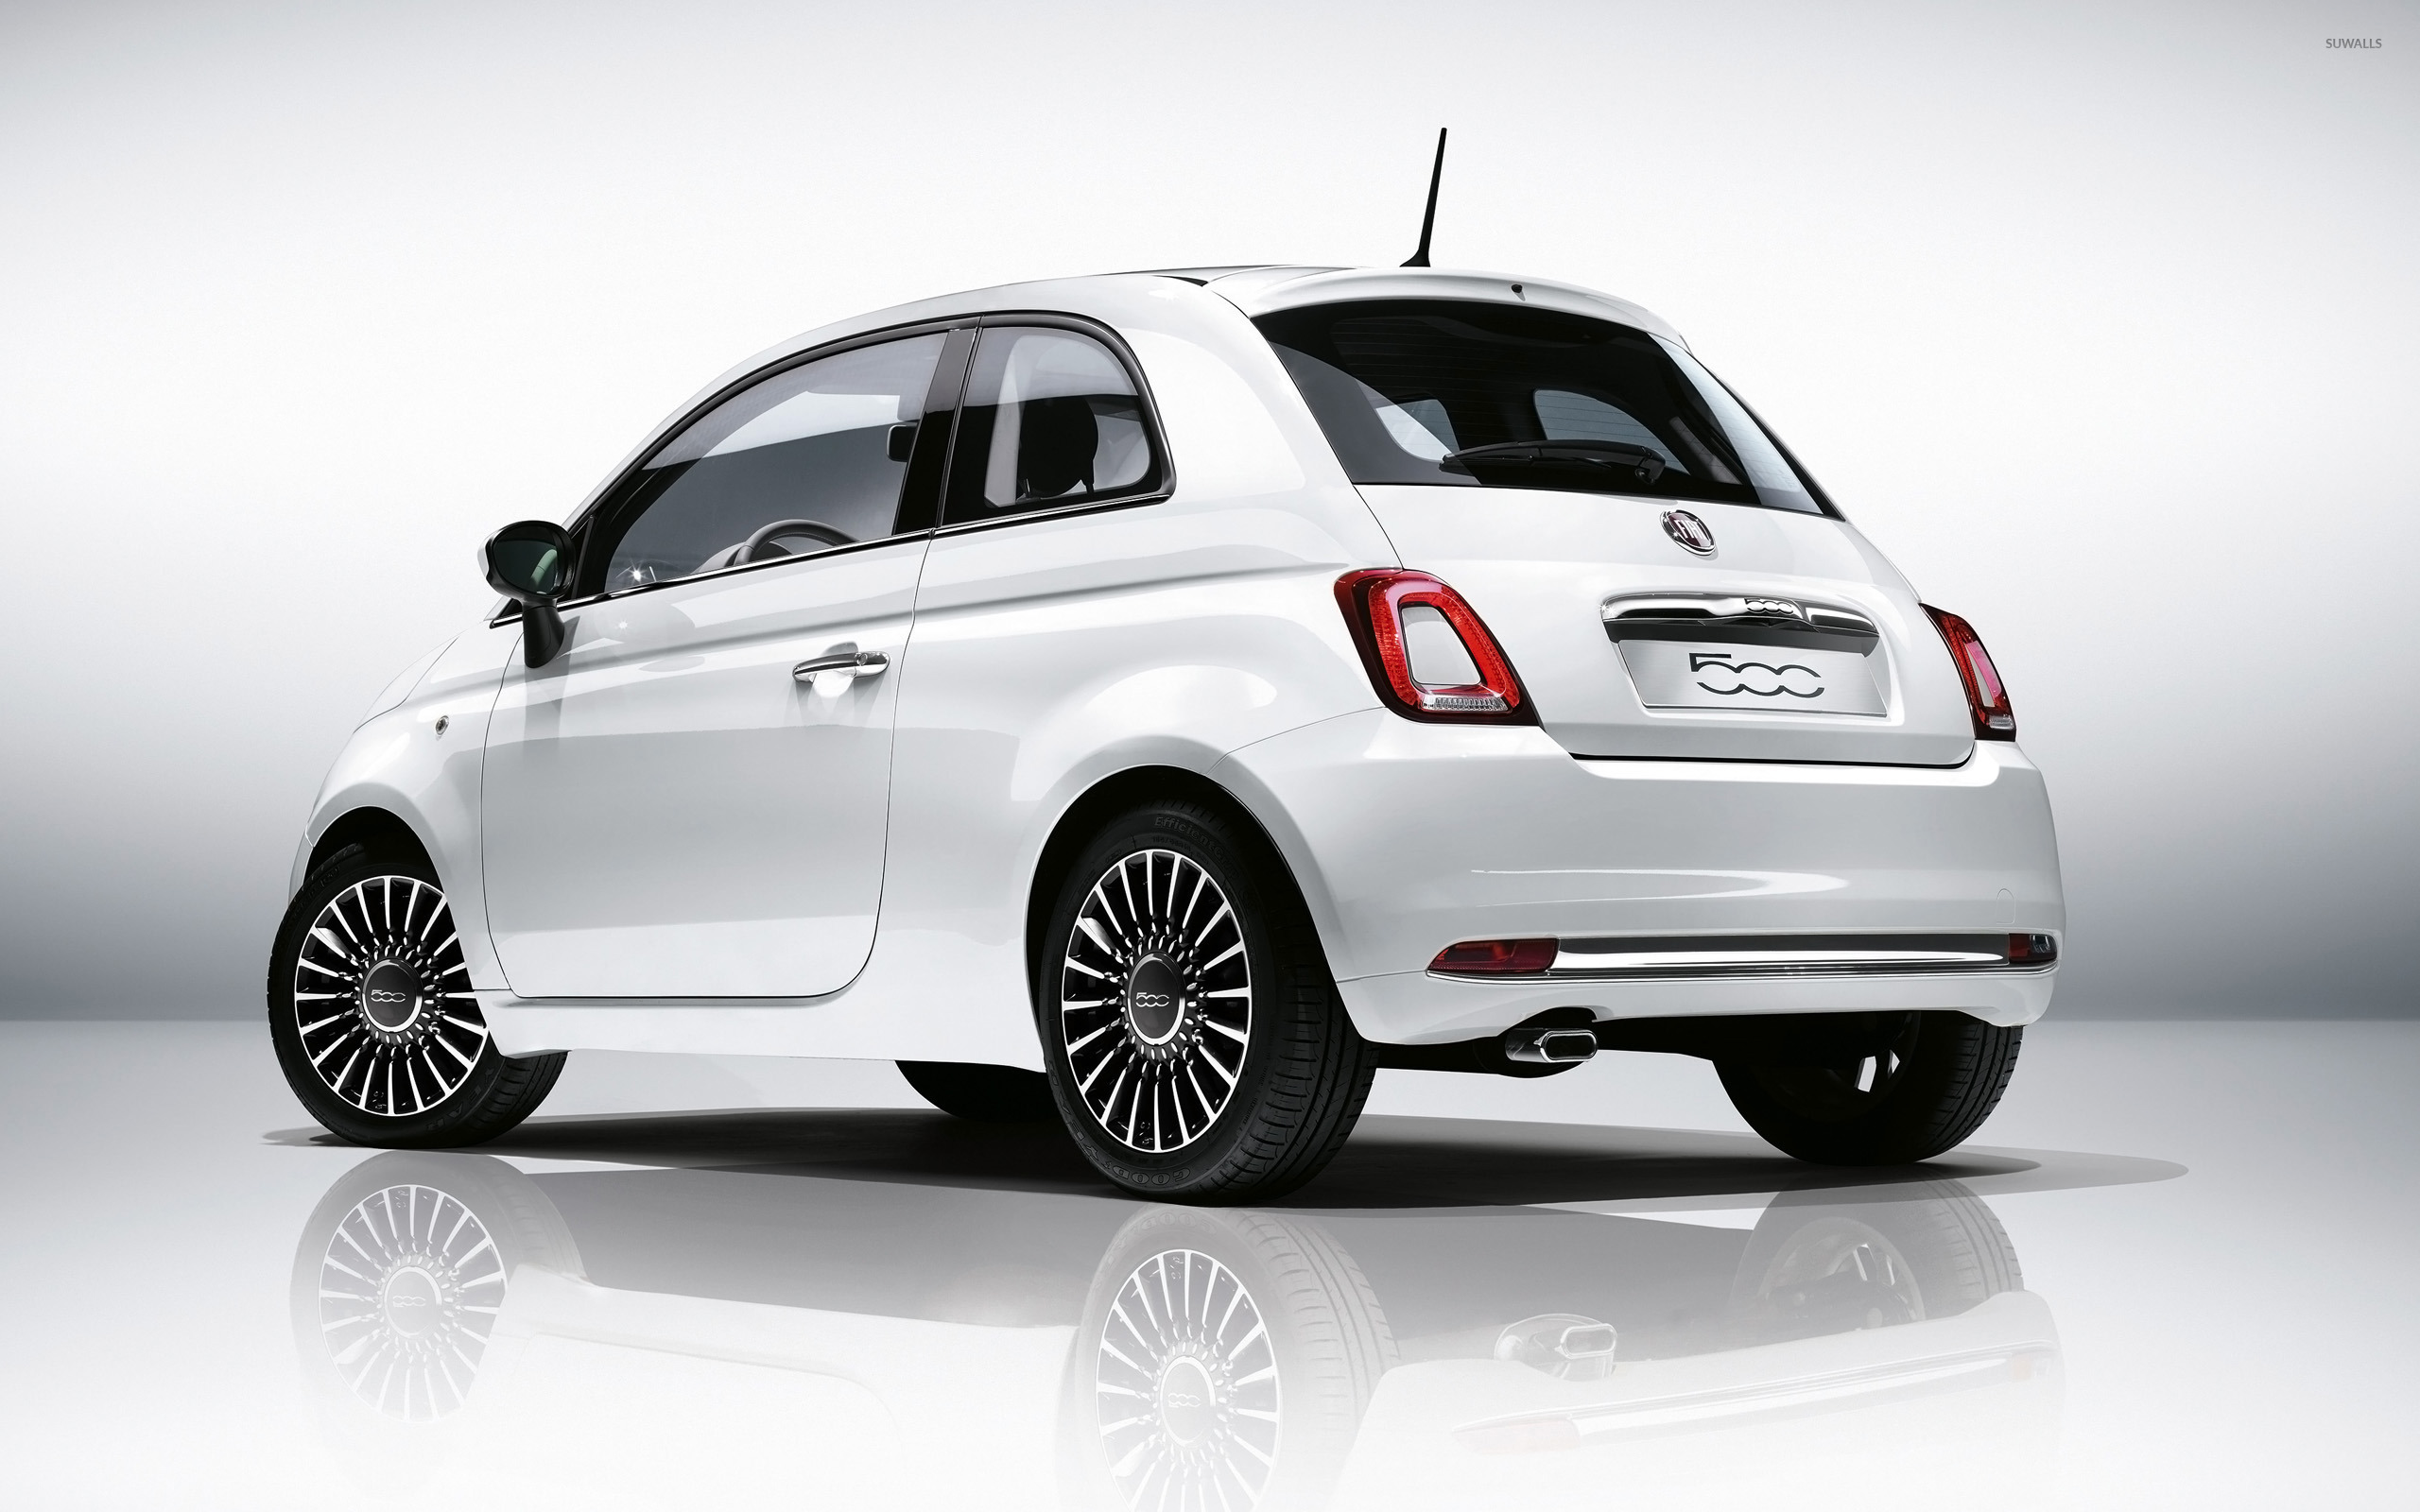 north in mpv america has may now the back changes details and fiat images indeed broke news would year refreshed that model arrive usa released for we